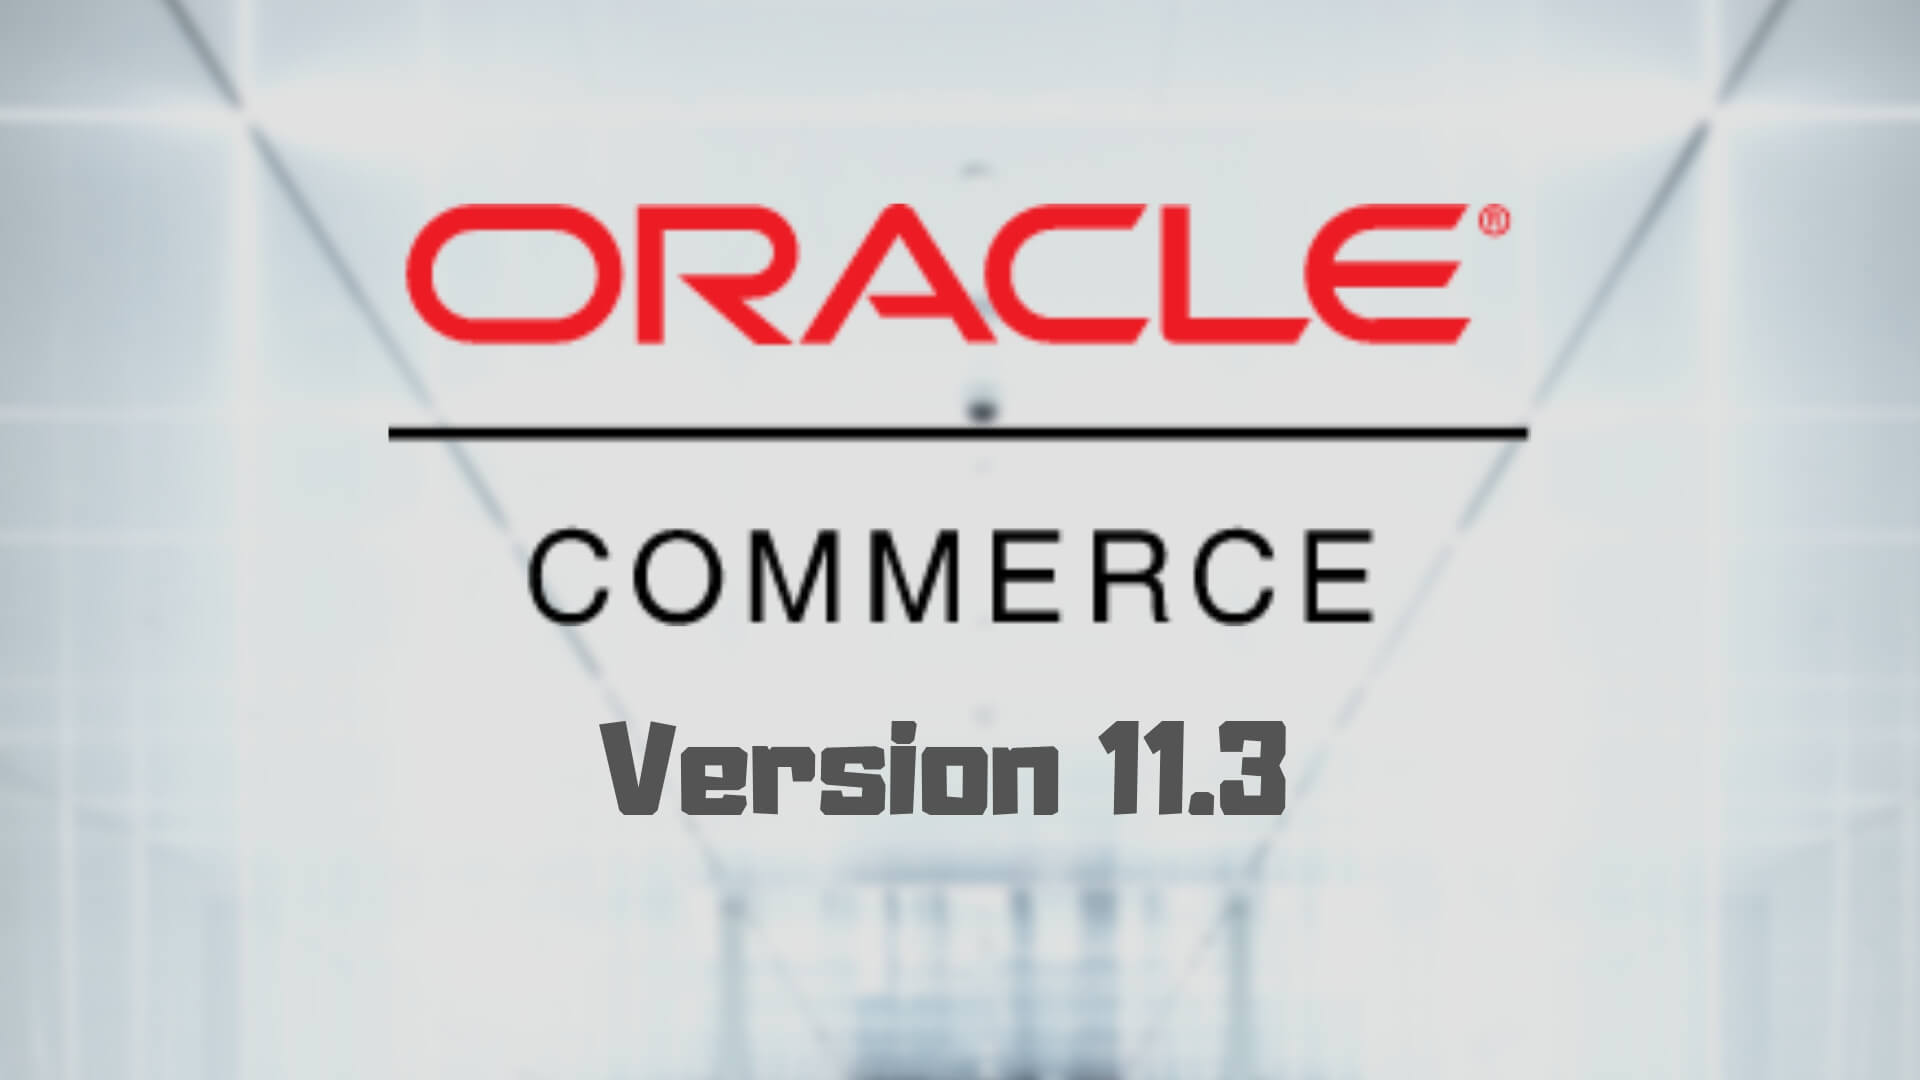 Oracle Version 11.3